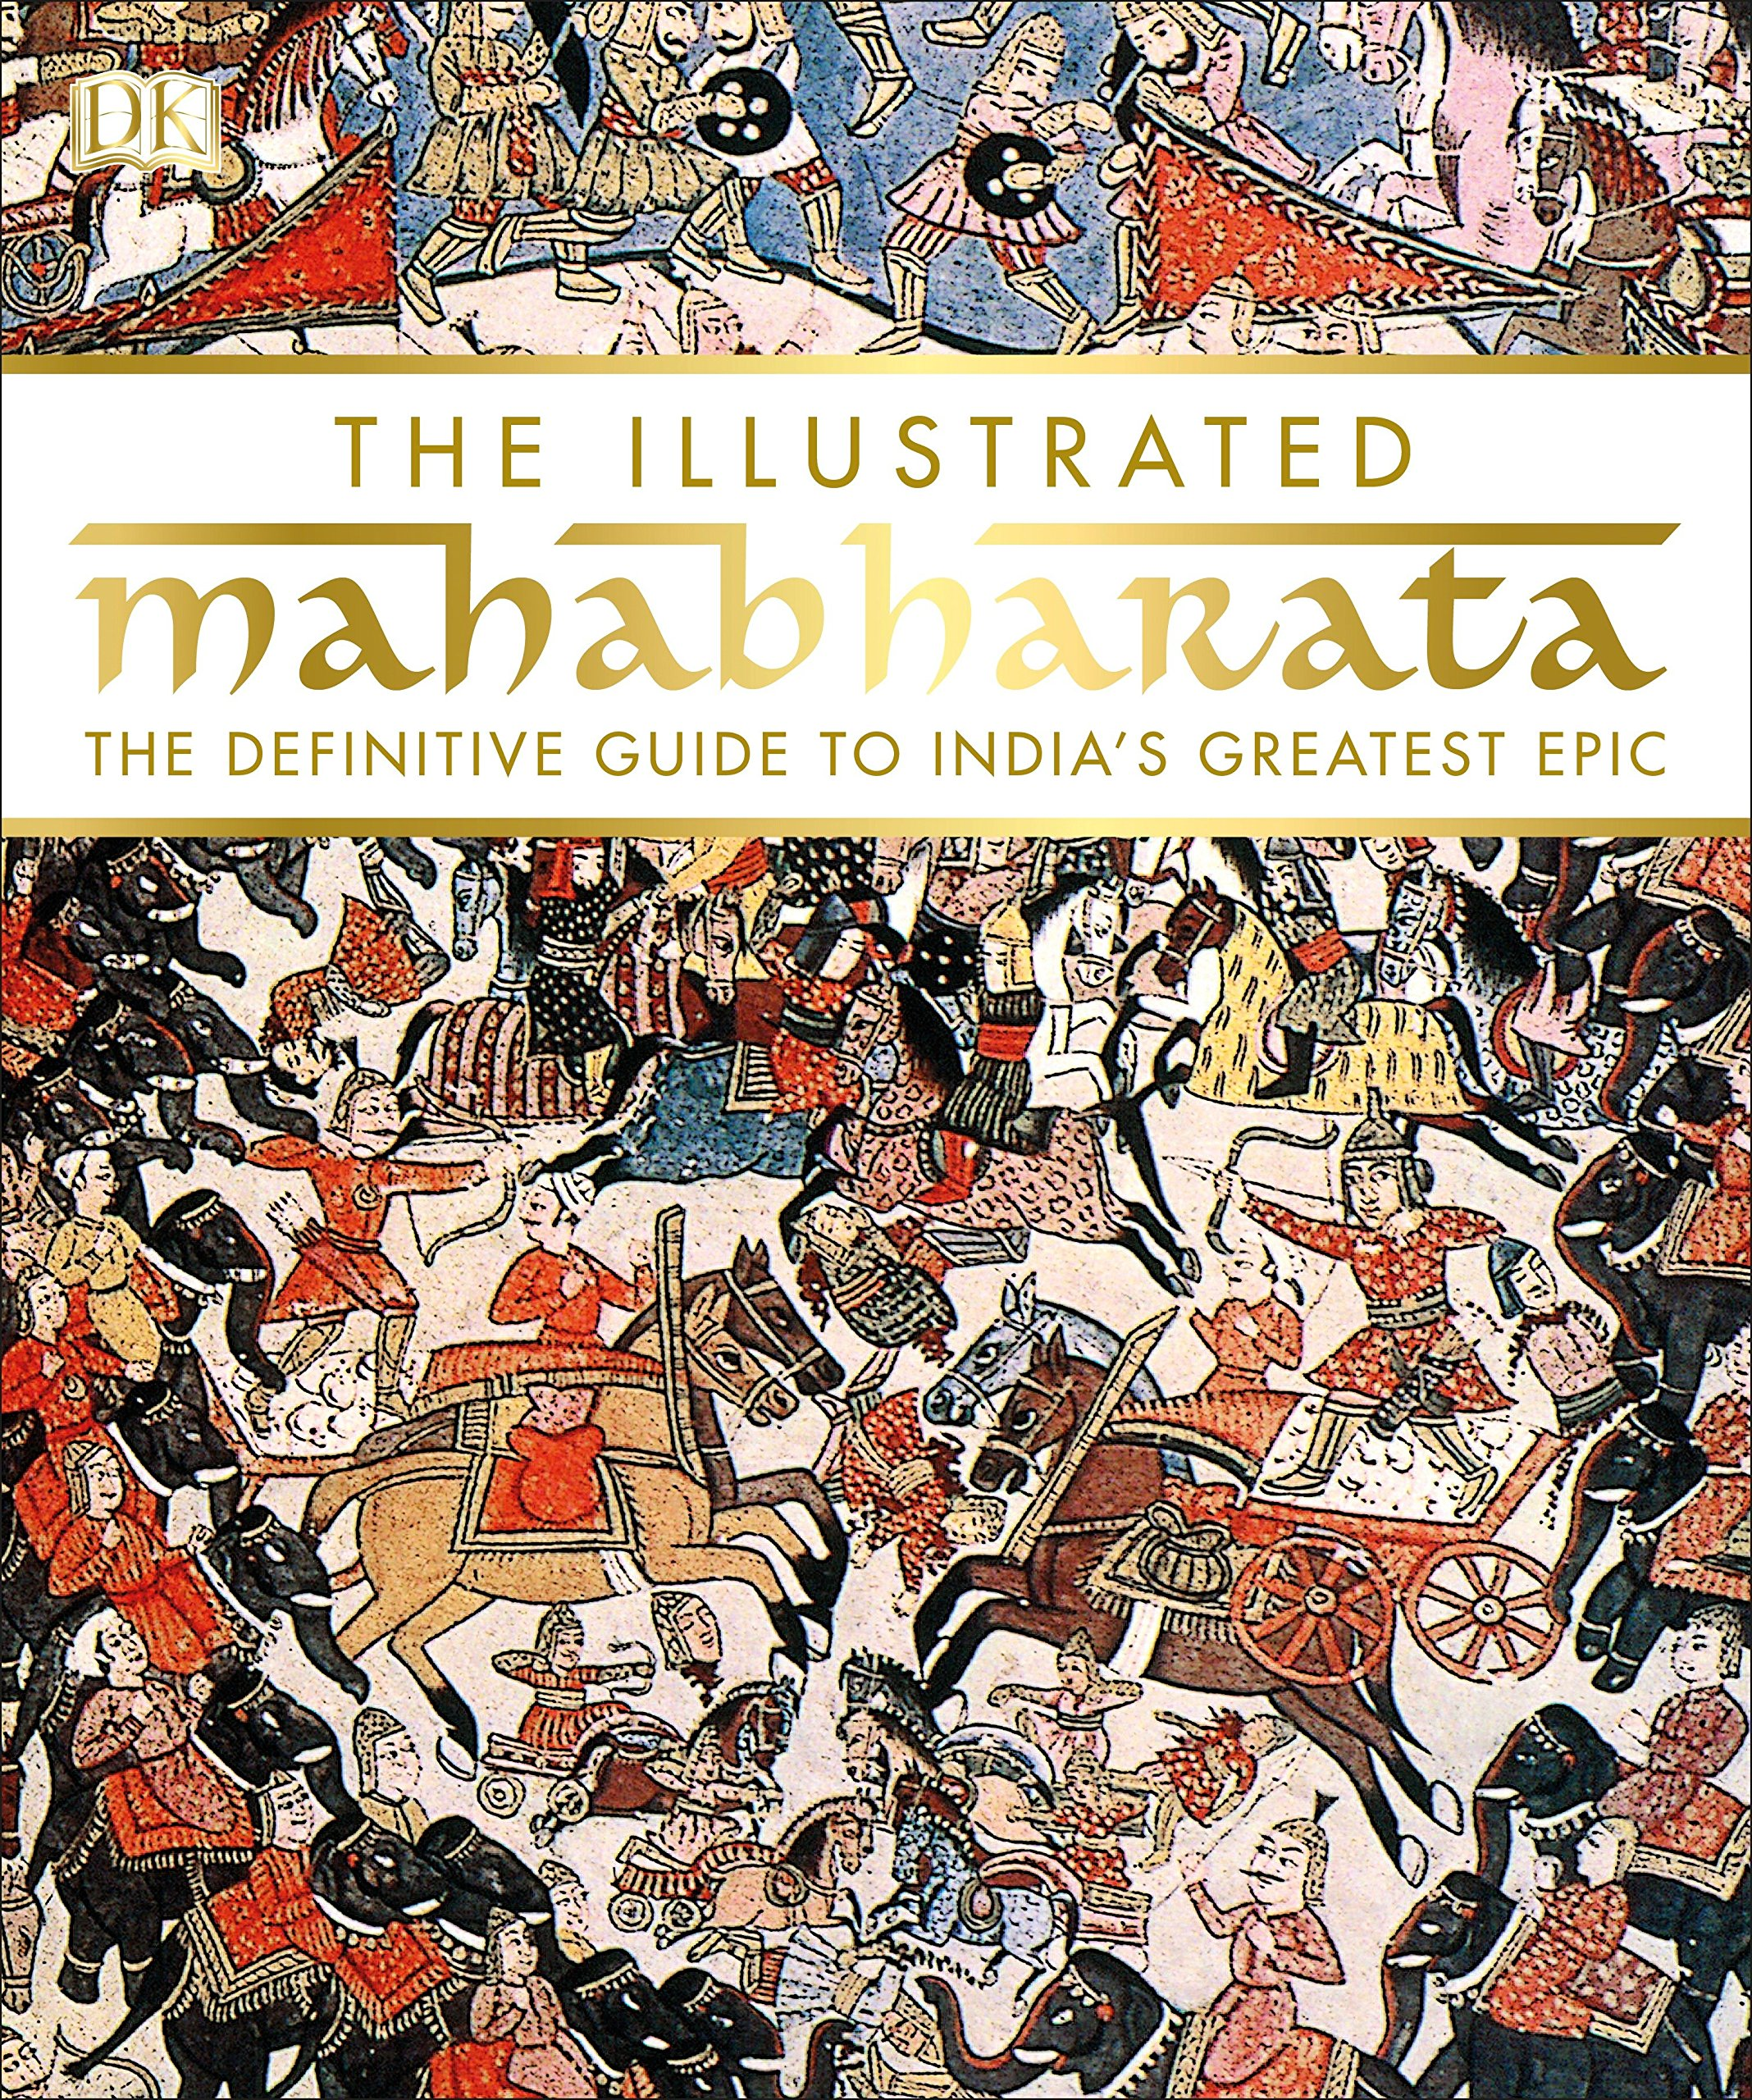 The Illustrated Mahabharata: The Definitive Guide to India s Greatest Epic by DK